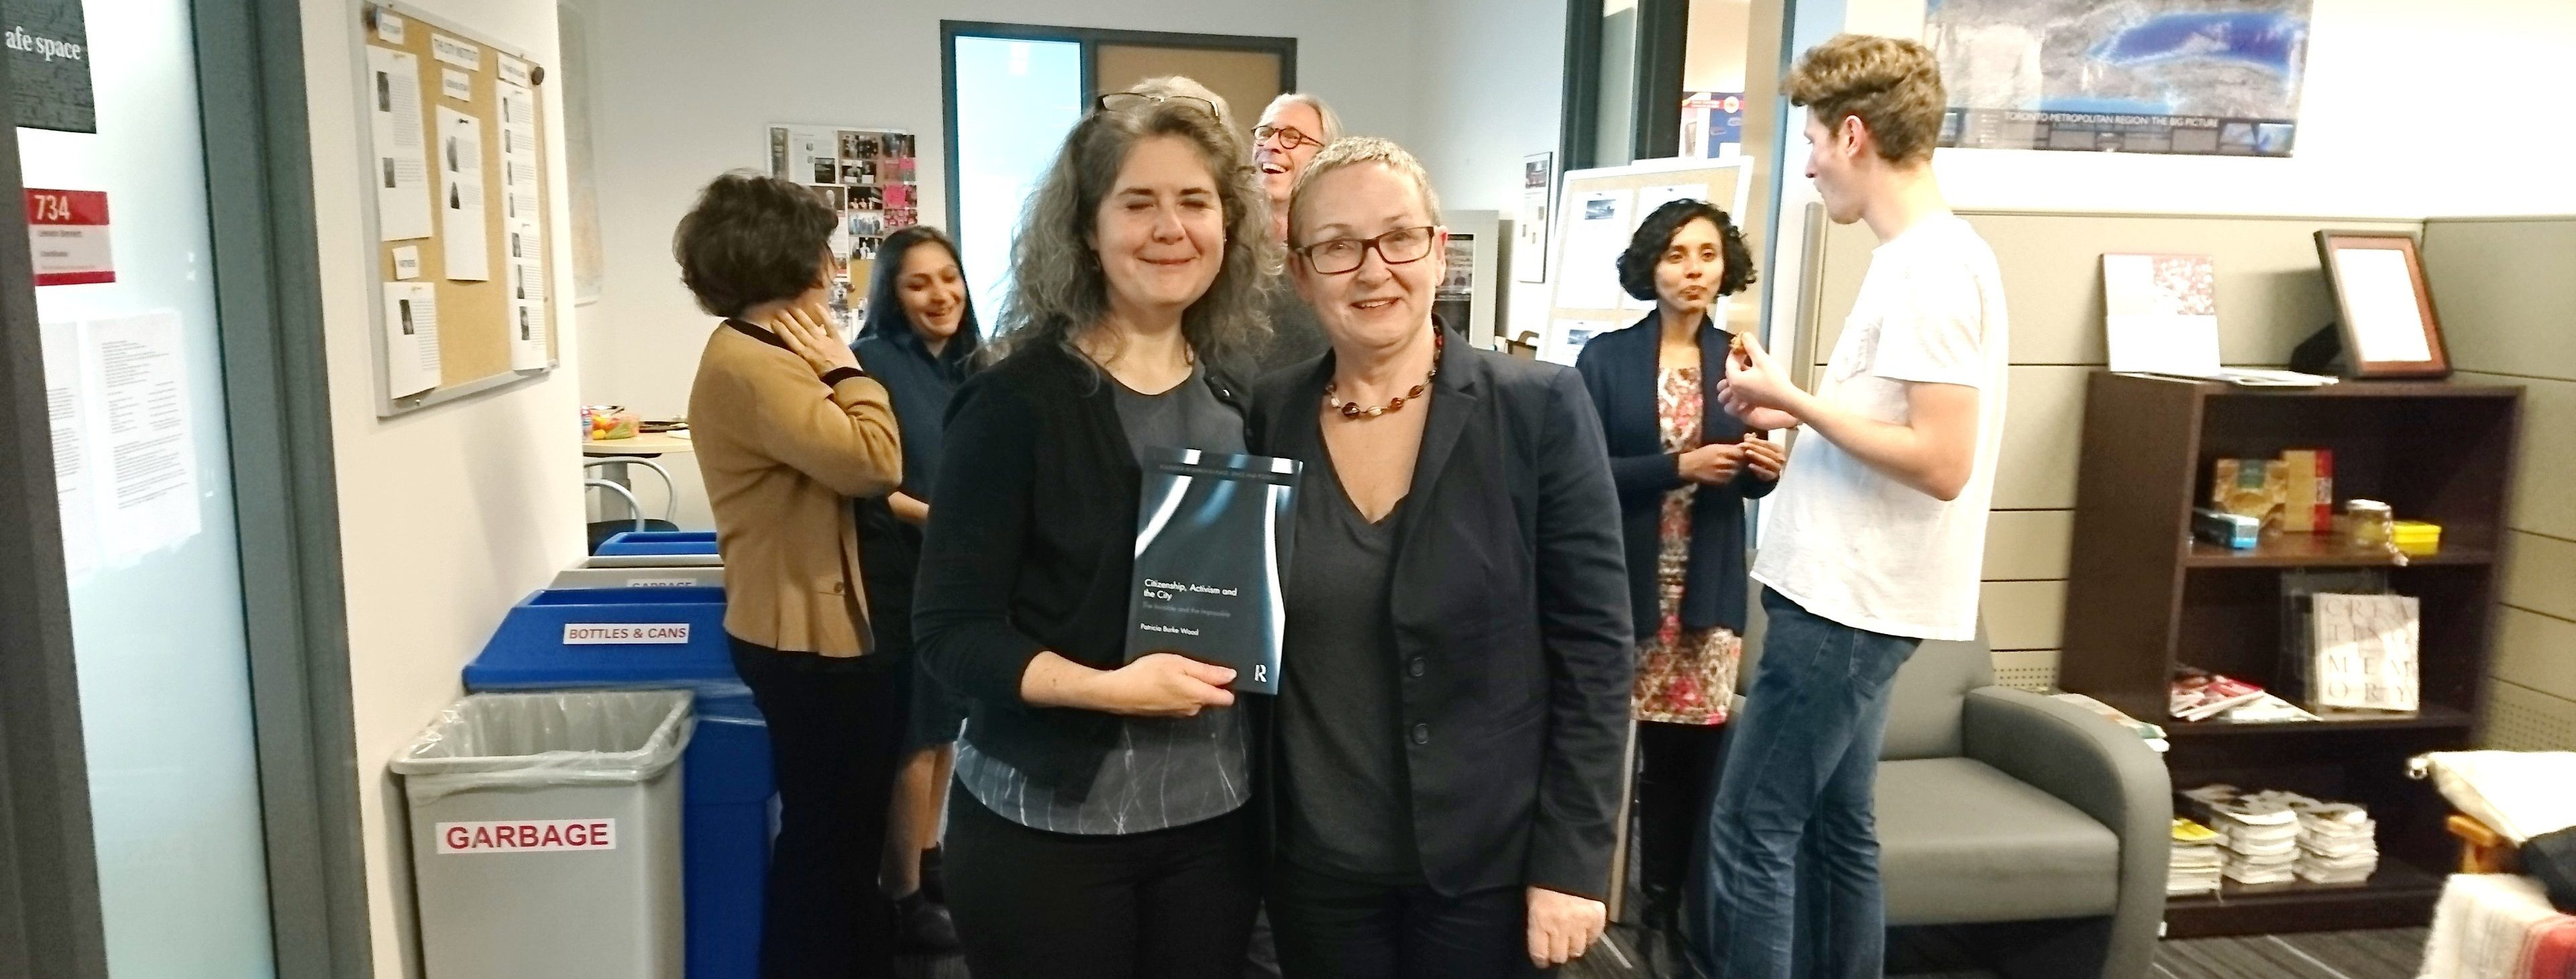 Linda Peake with Patricia Burke at CITY's 2017 Meet & Greet and Book Launch